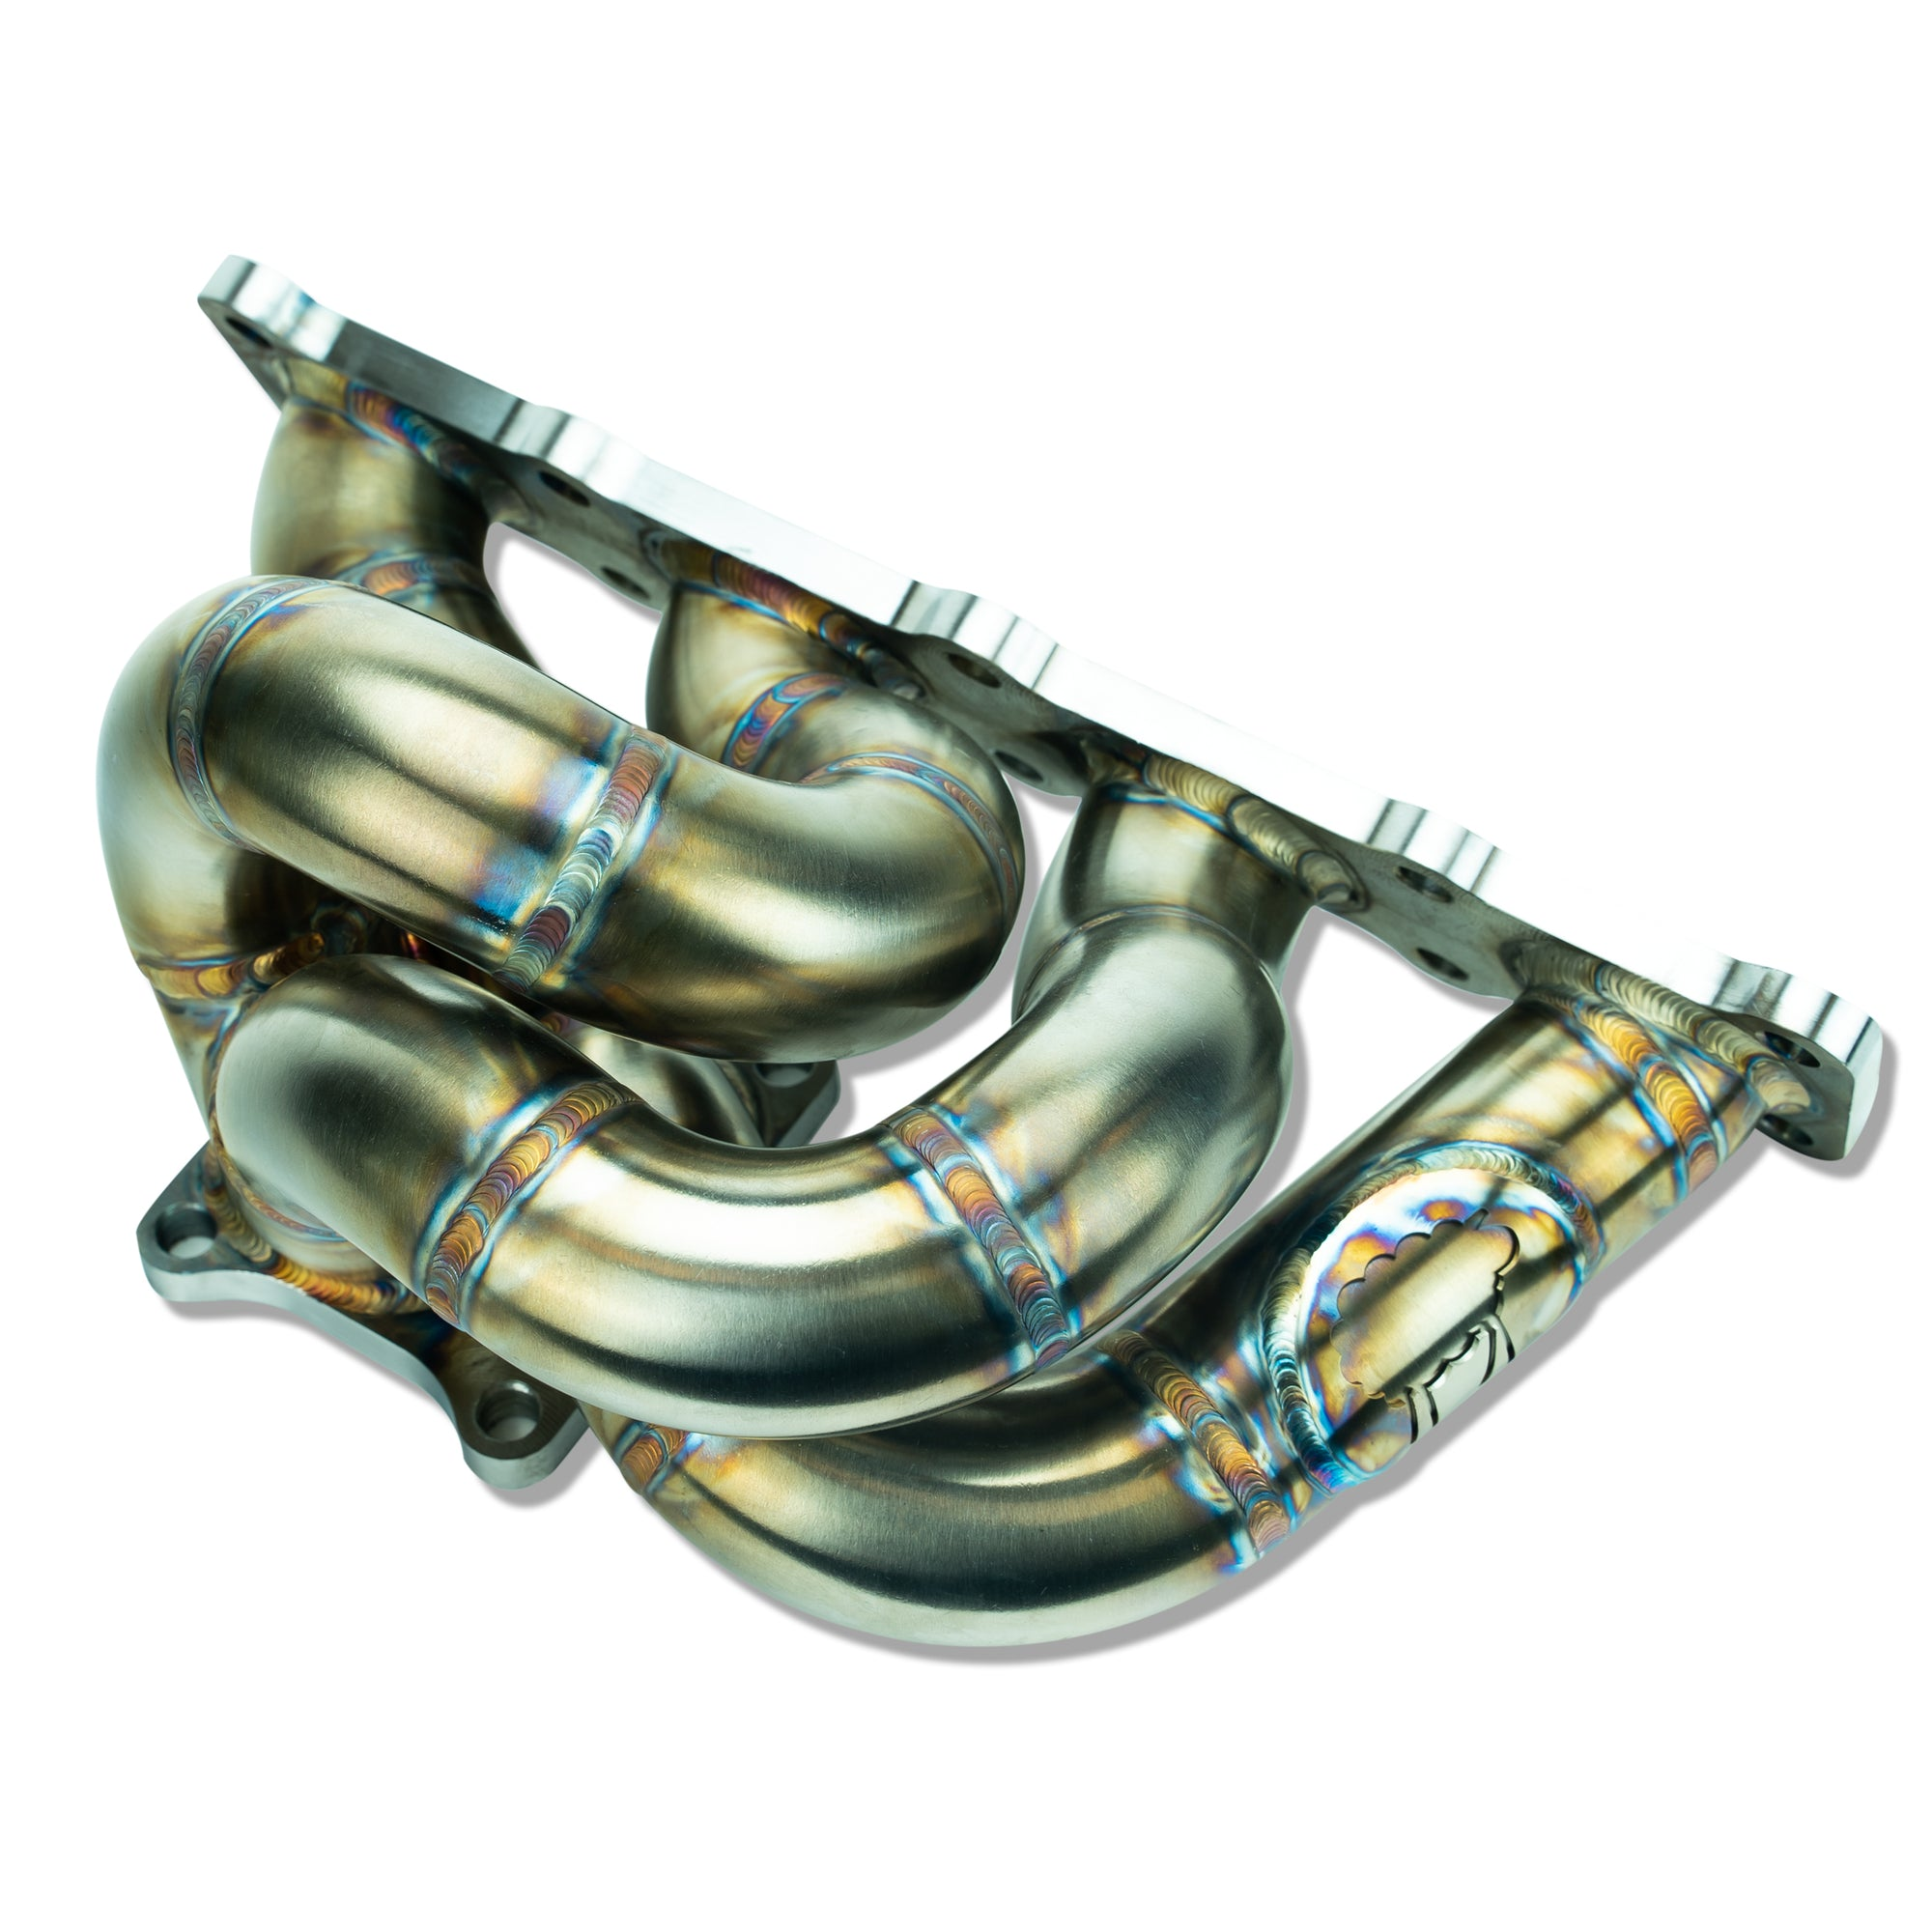 SheepeyRace Evo X Factory Replacement Turbo Manifold